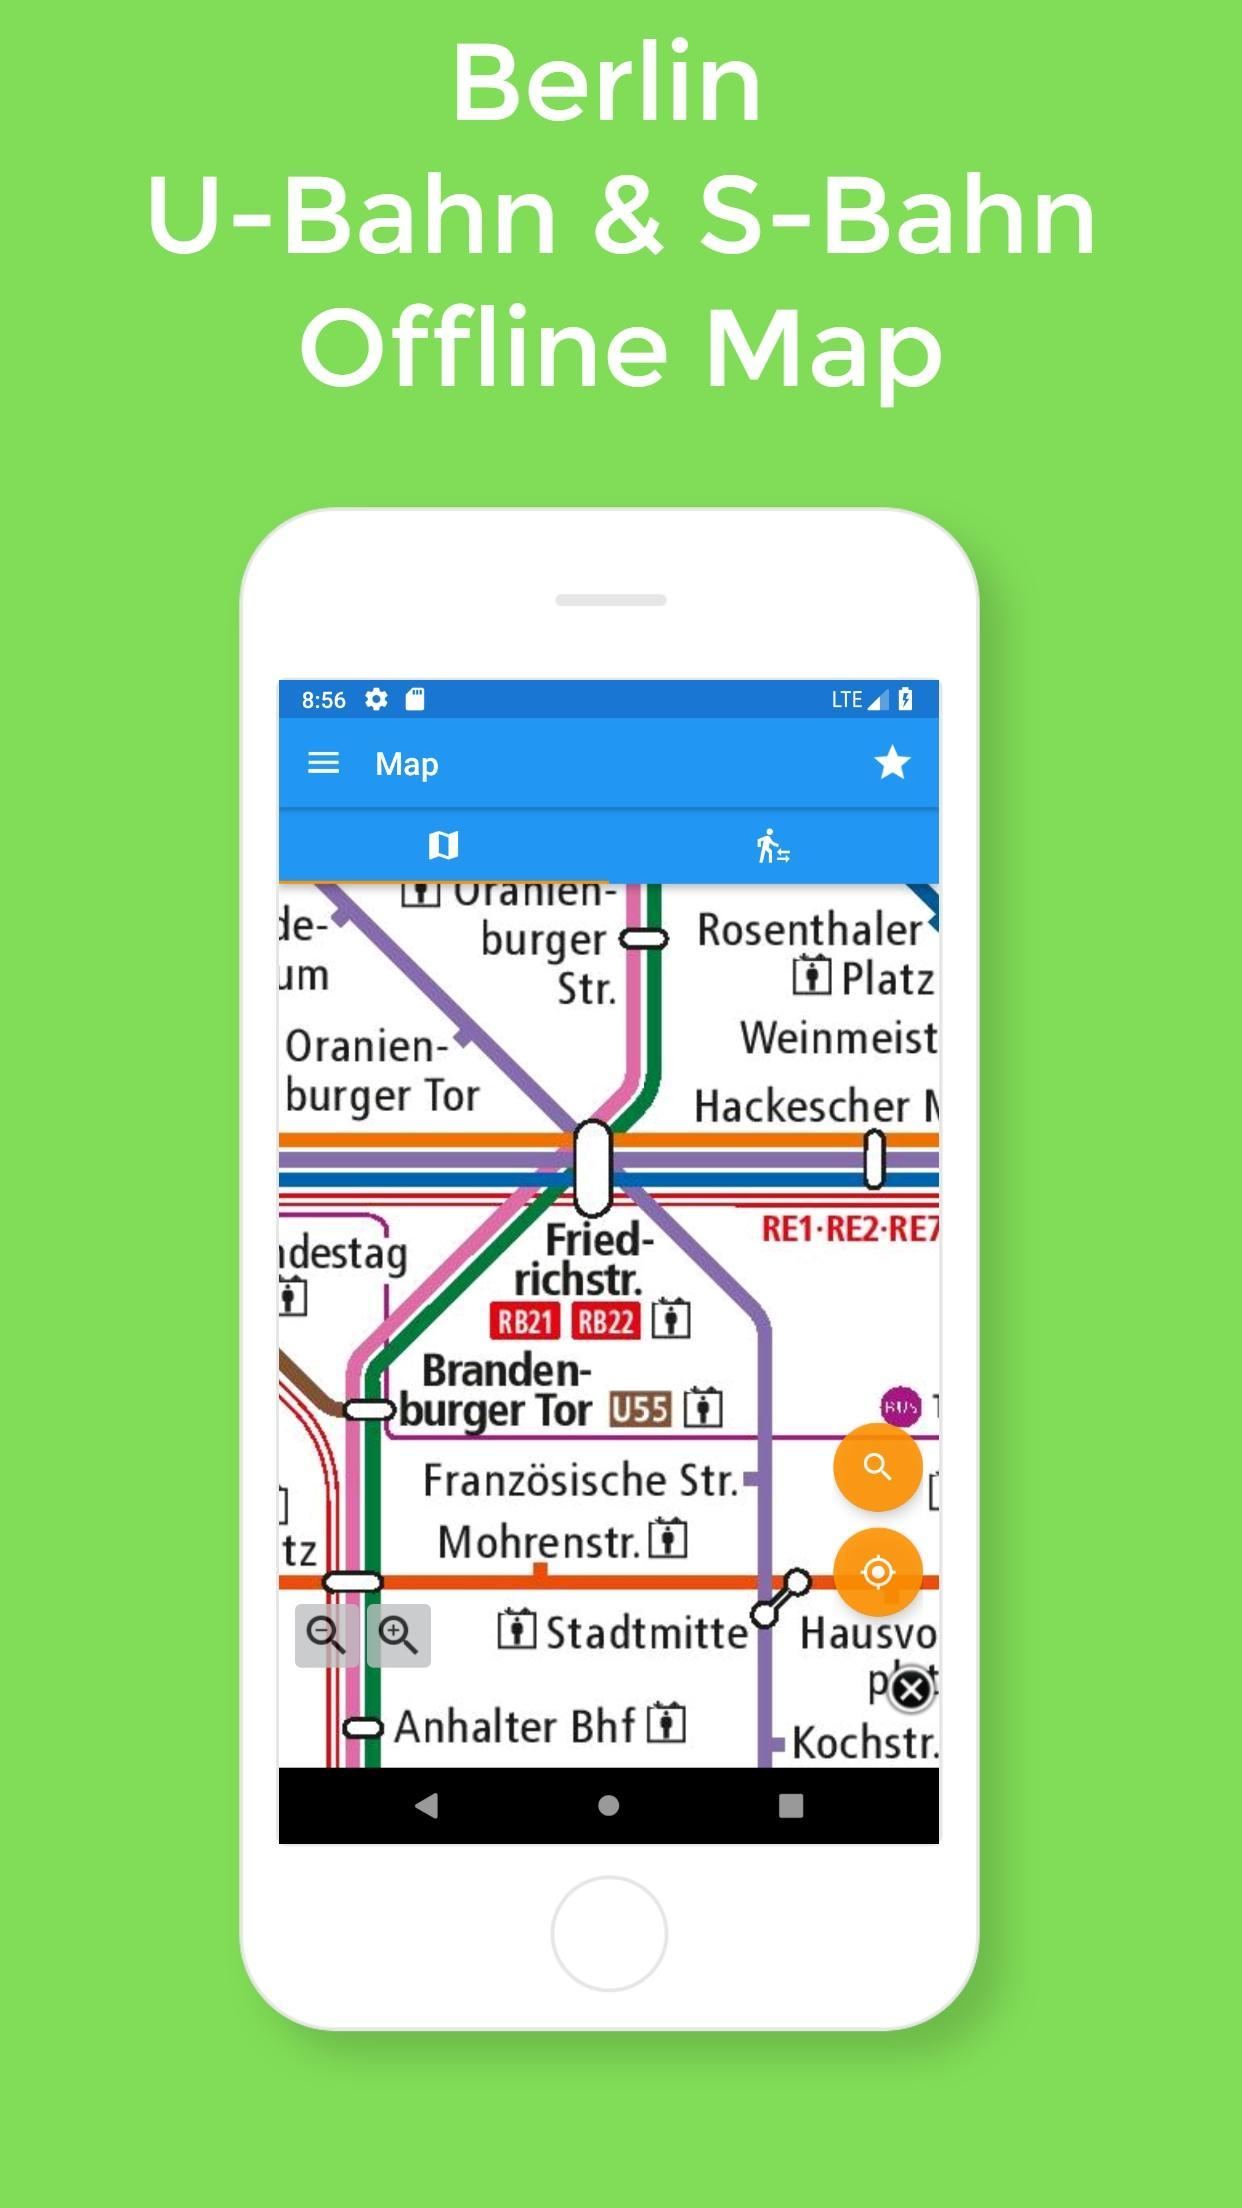 Berlin For Android Apk Download - Berlin-us-bahn-map